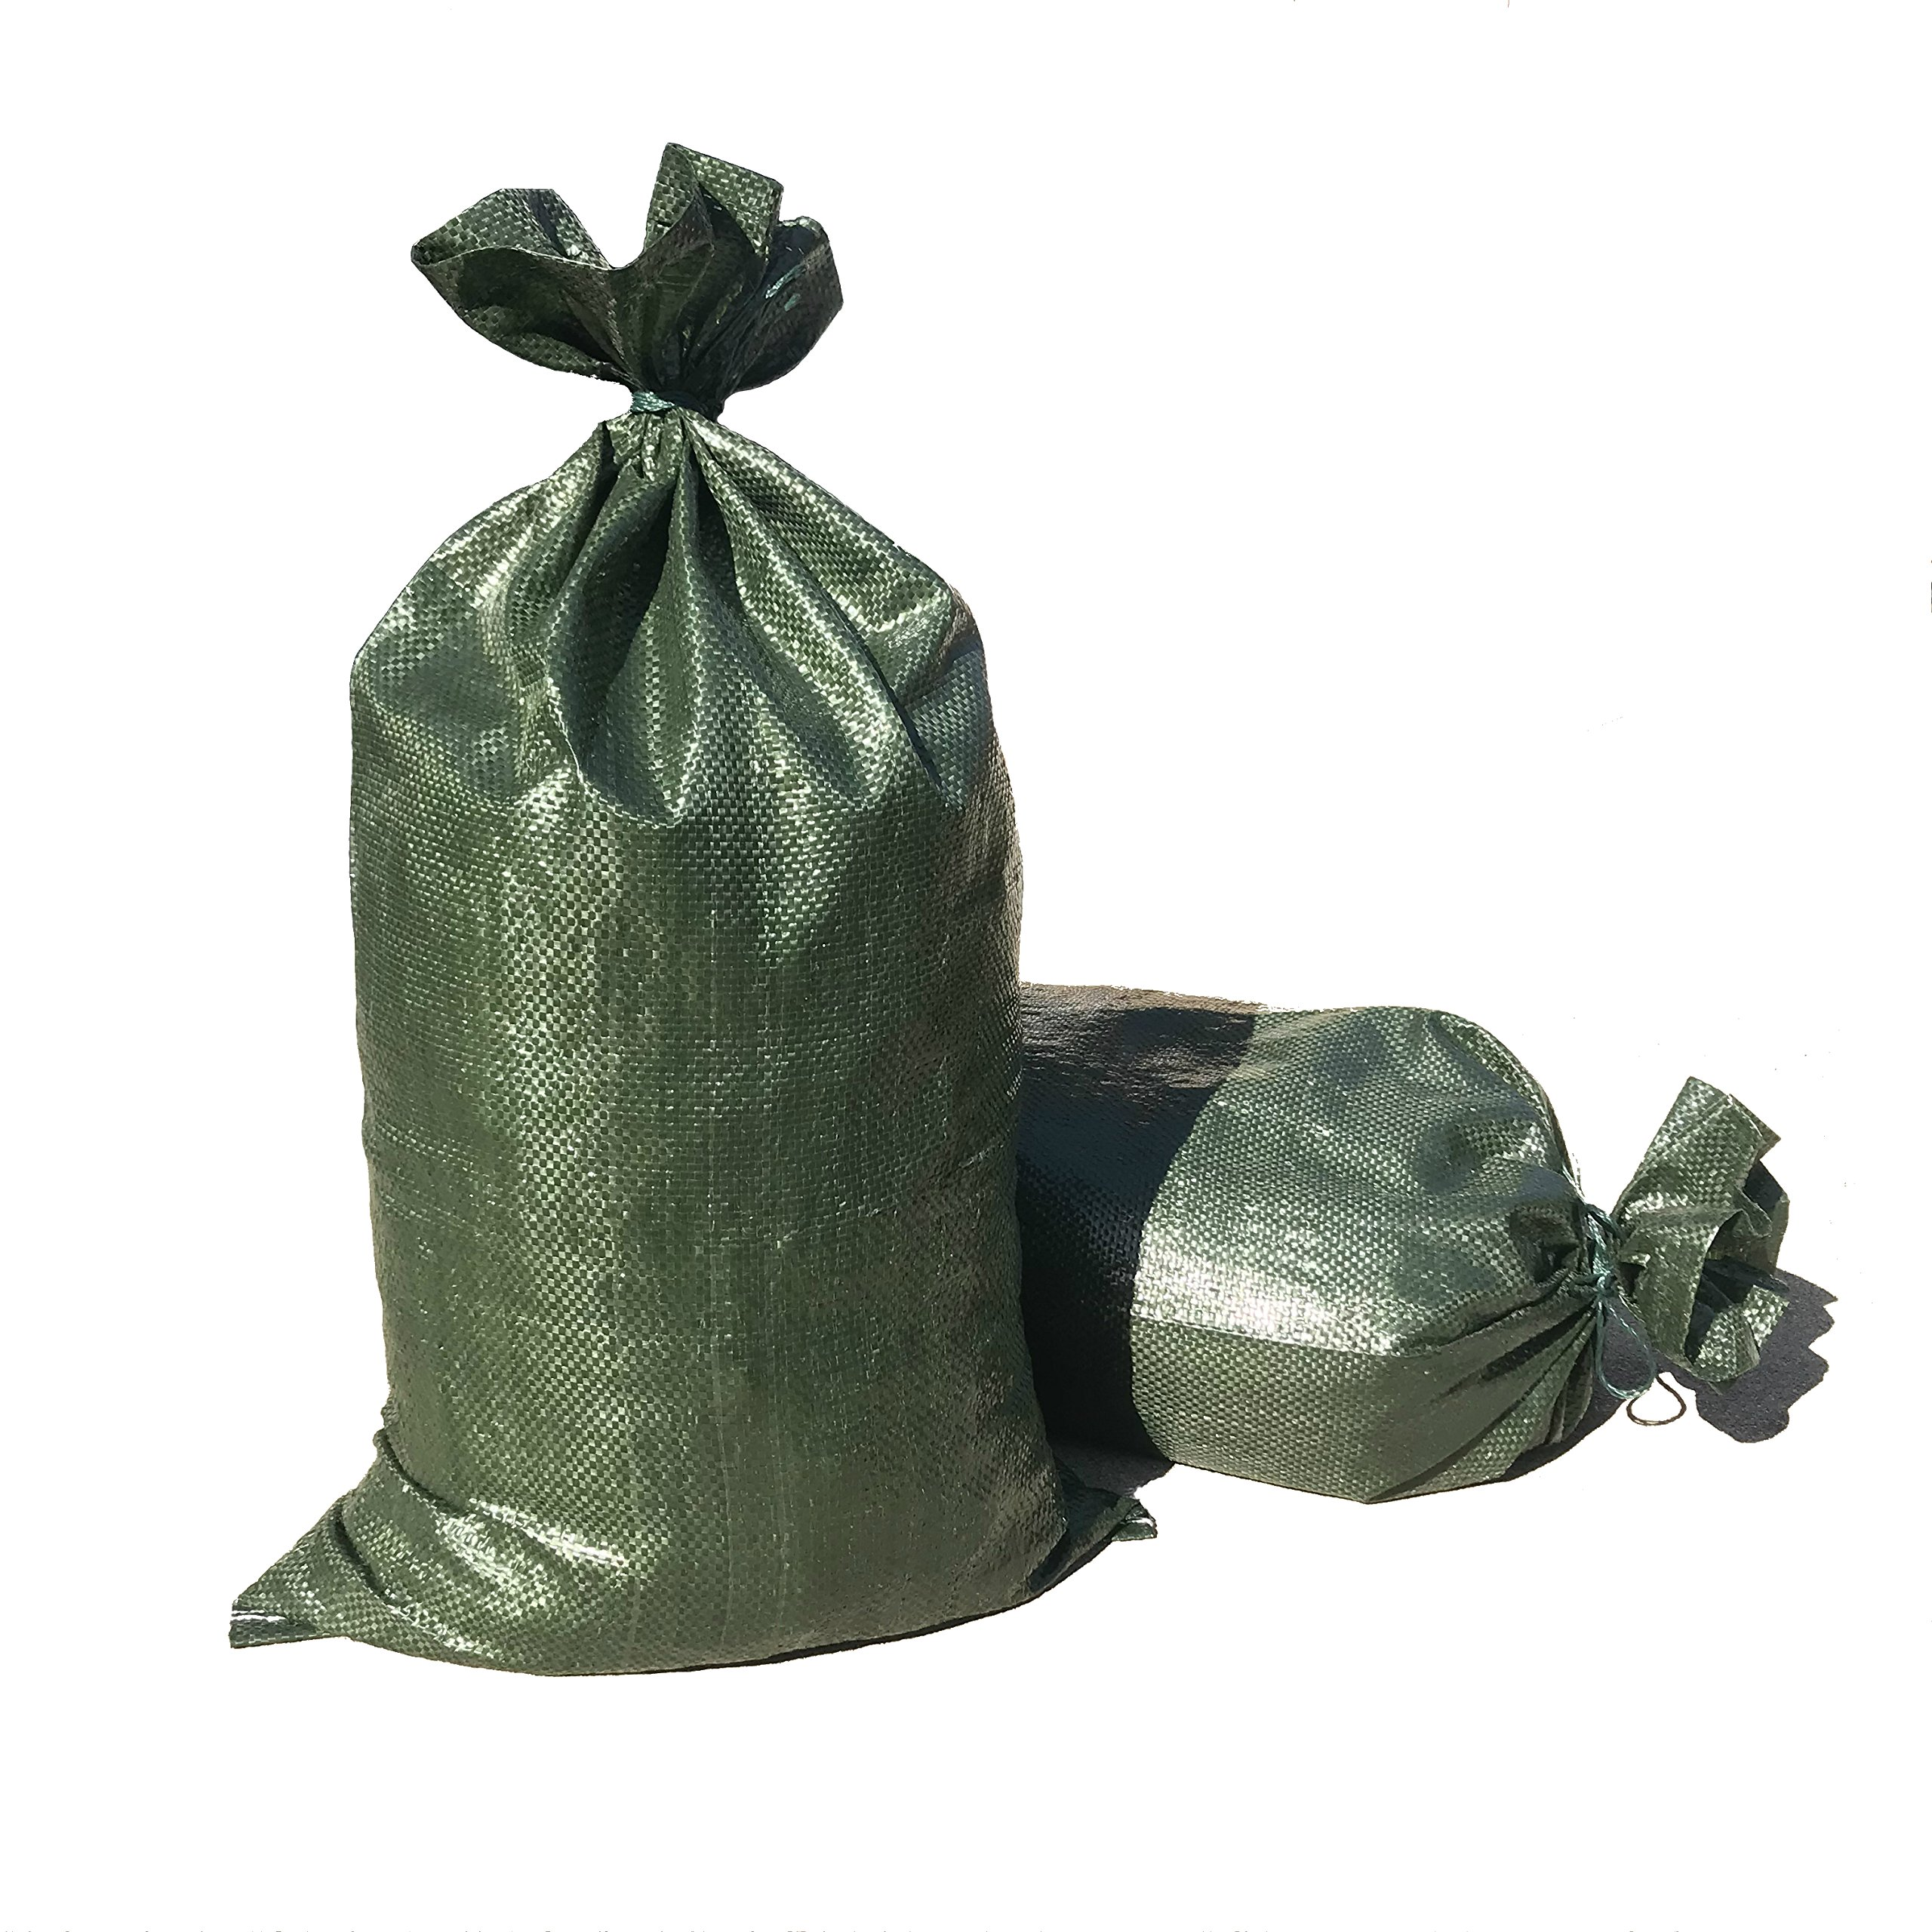 Intock Sandbags | Military Grade Empty Dark Green Woven Polypropylene Heavy Duty Sand Bags | With Strong Drawstring Closure Ties | 4000 Hrs Of UV Protection | 14'' x 26'' Size | 50 Lbs Capacity | 20 Pcs by Intock